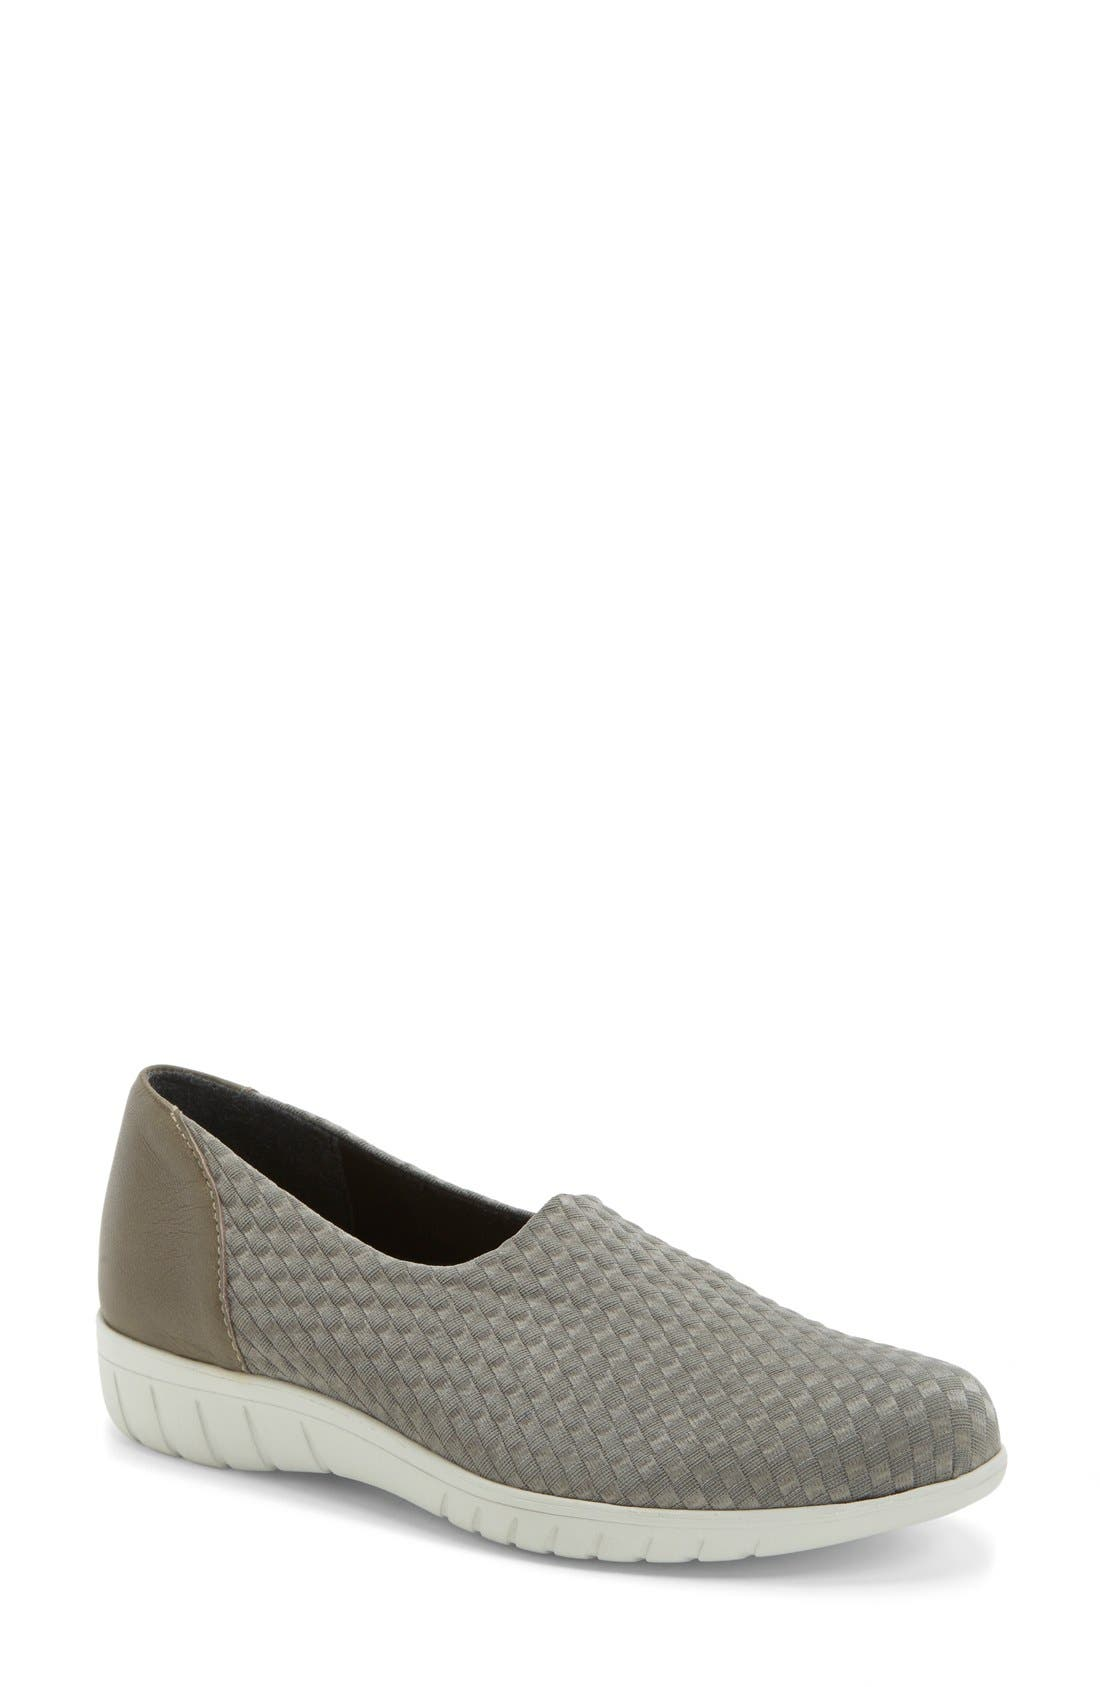 Munro 'Cruise' Woven Slip-On Sneaker (Women)